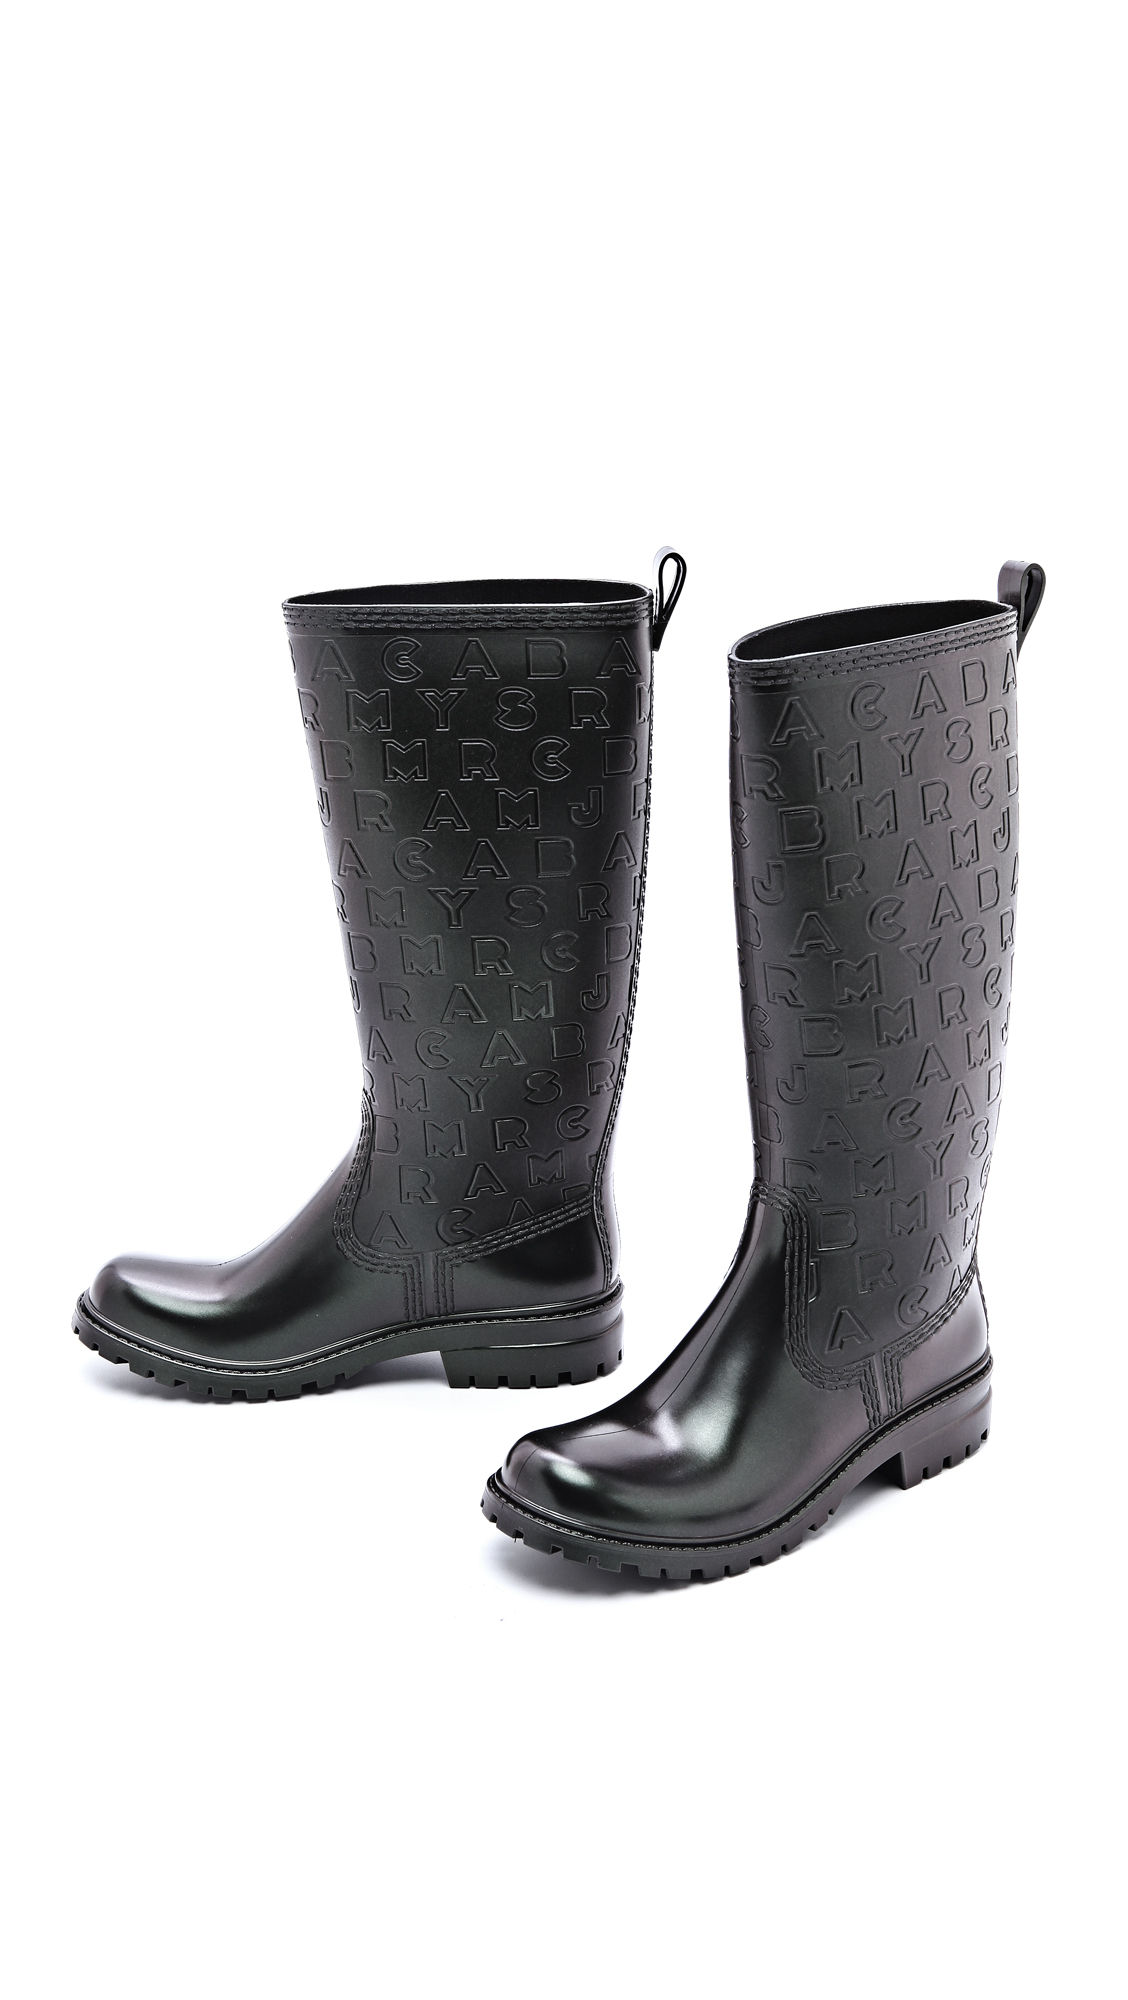 marc by marc jacobs rainy day rain boots in black beetle. Black Bedroom Furniture Sets. Home Design Ideas